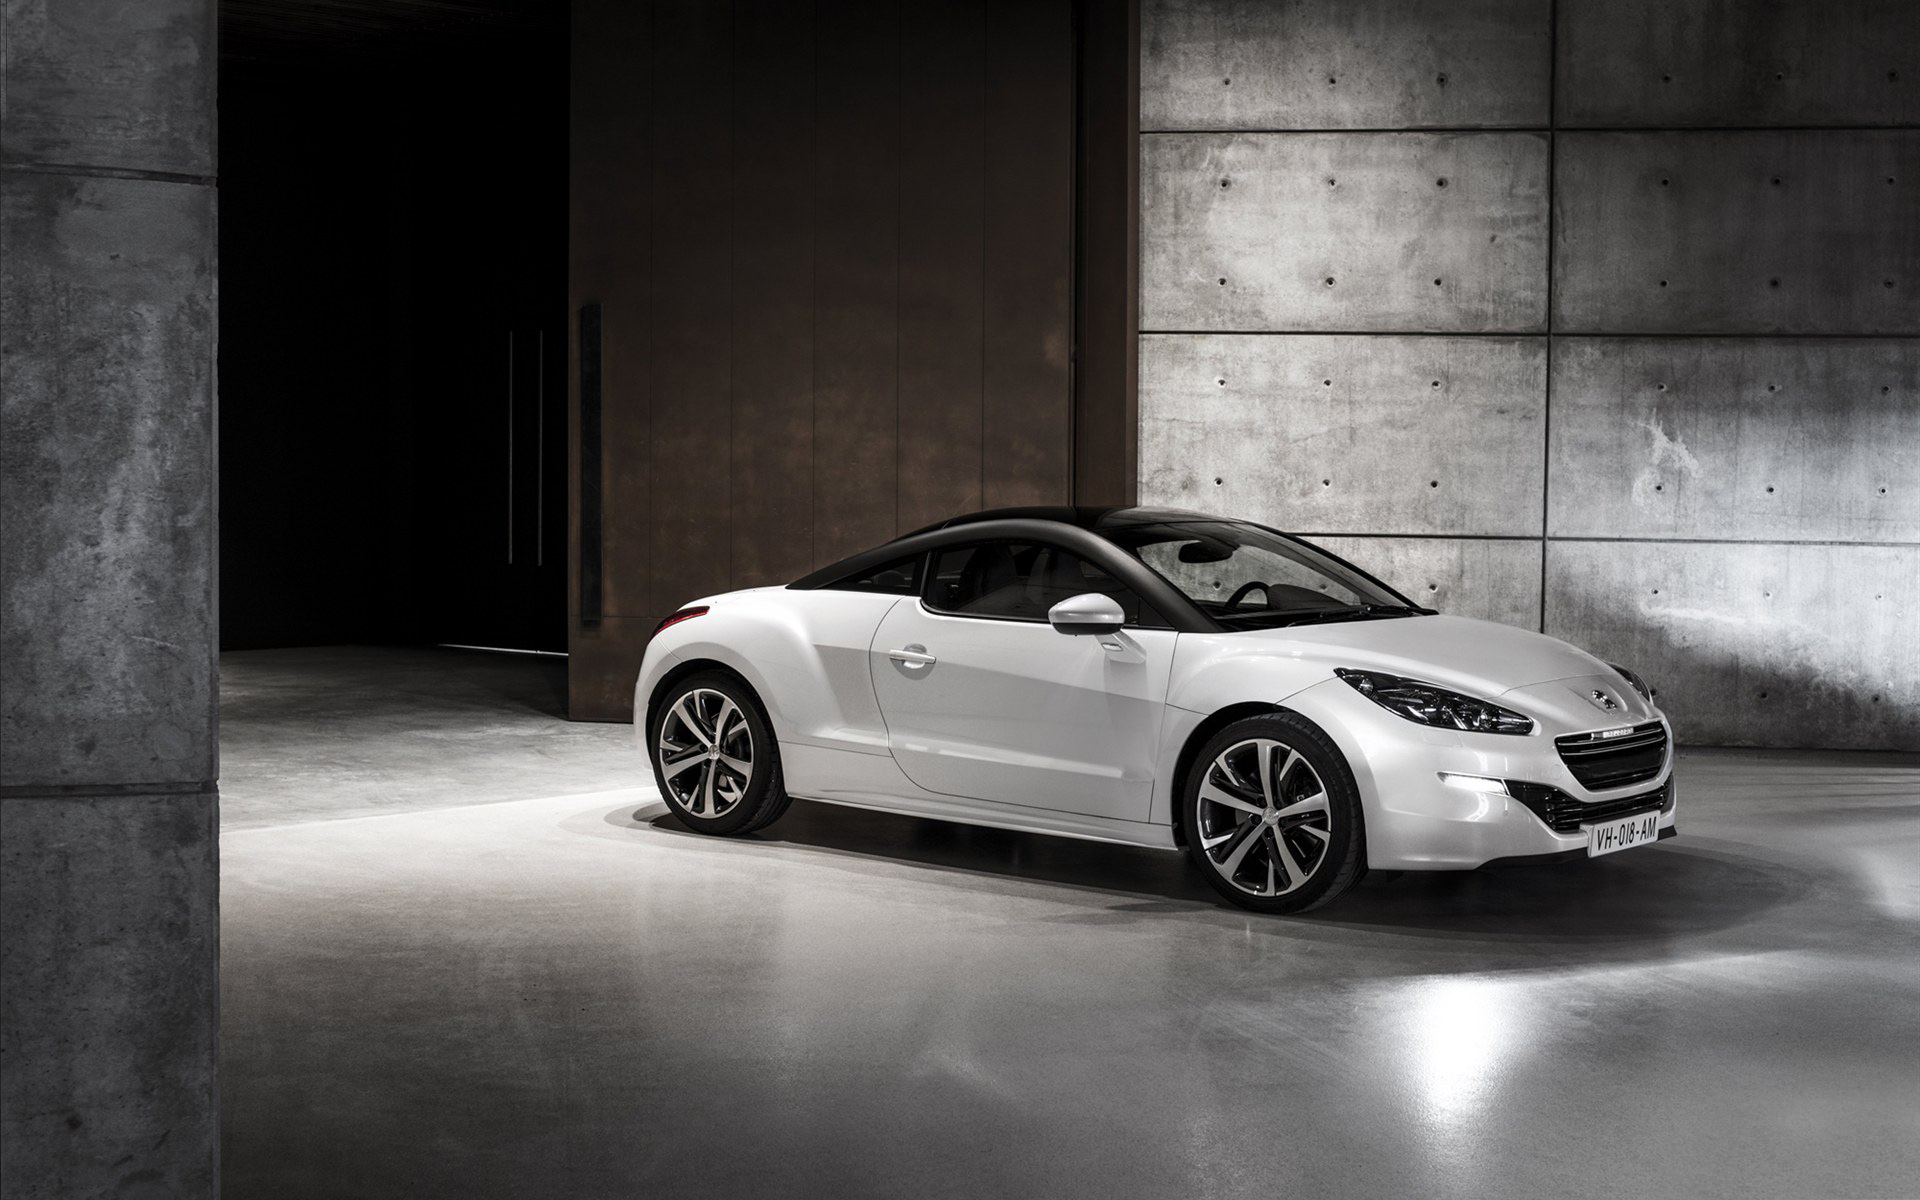 2013 peugeot rcz sports coupe wallpaper hd car wallpapers. Black Bedroom Furniture Sets. Home Design Ideas